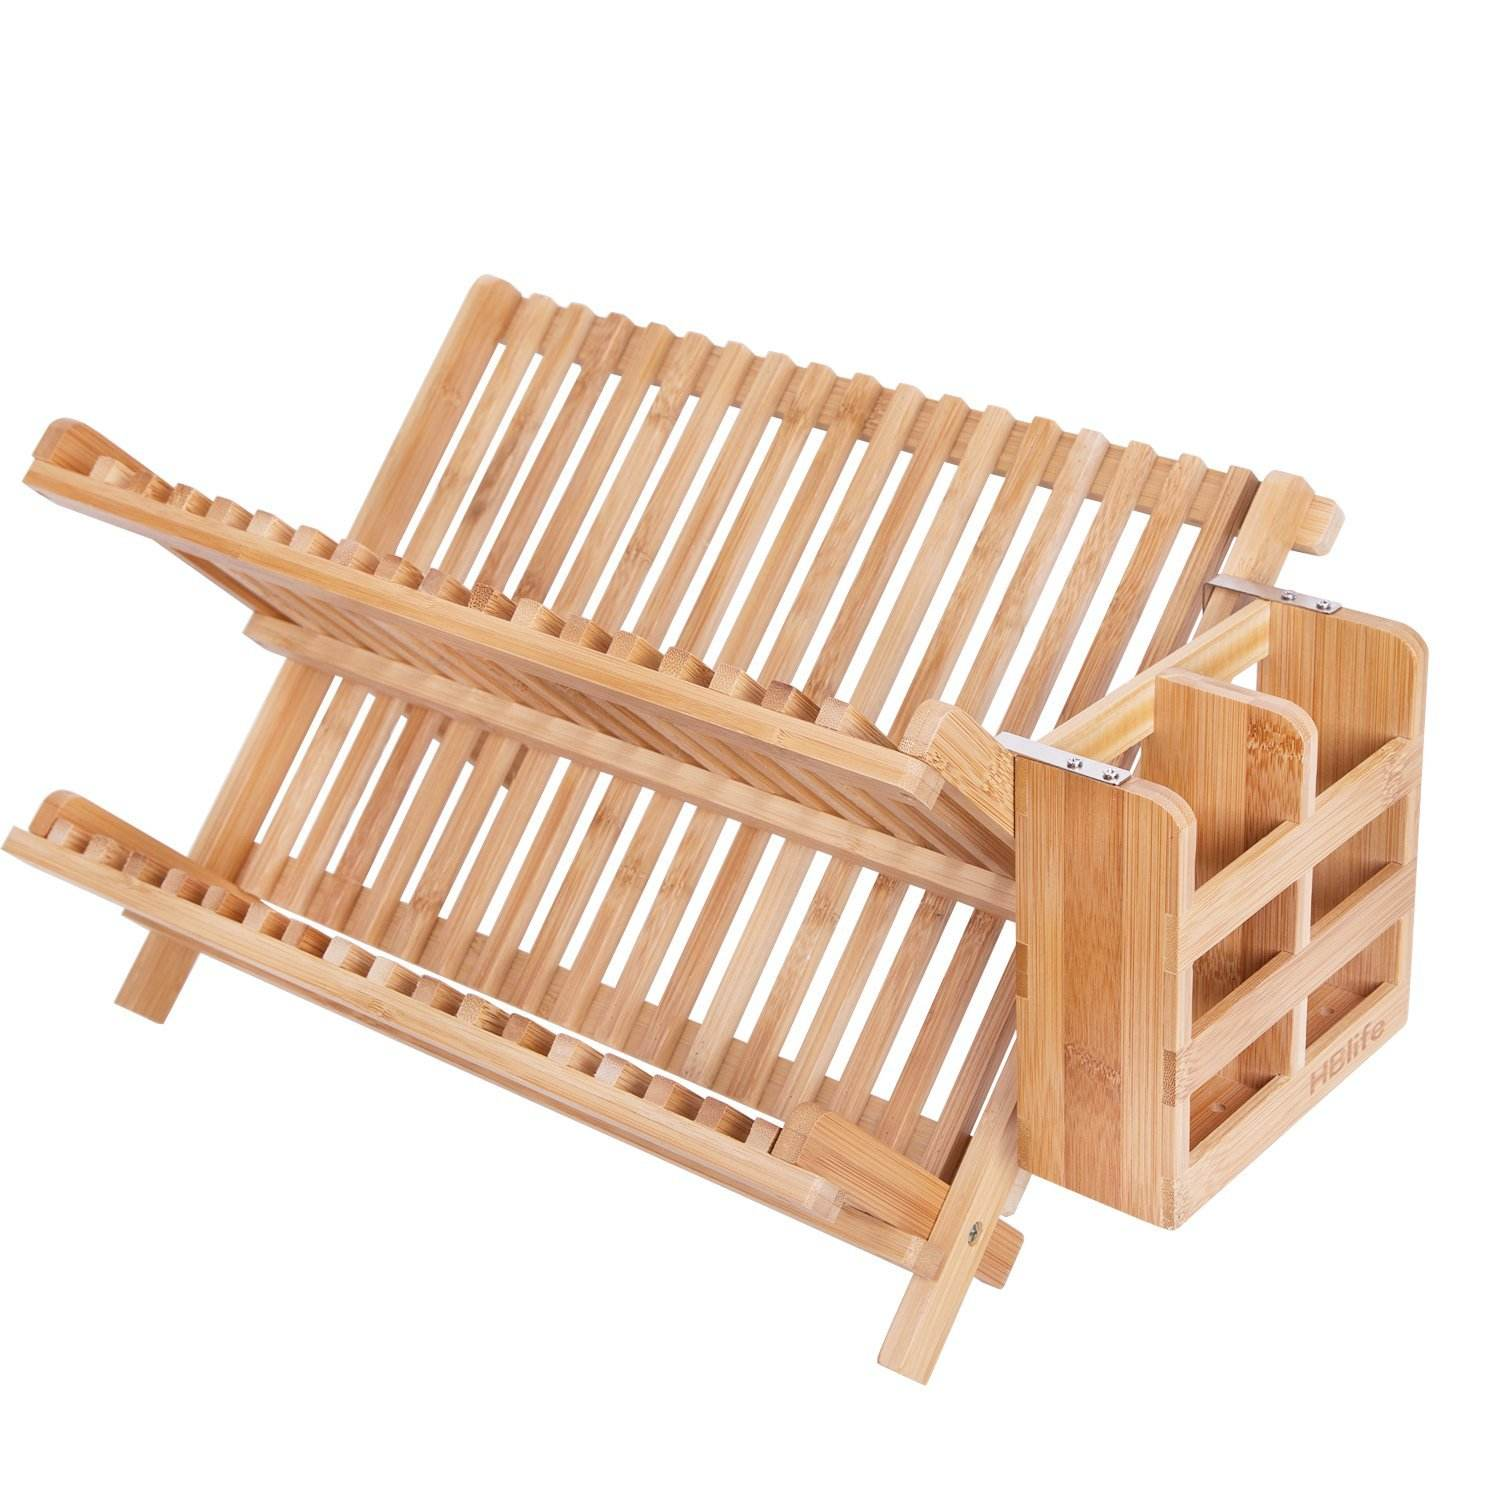 High Quality Easy Cleaning Thorough Draining Bamboo Double Collapsible Dish Drying Rack